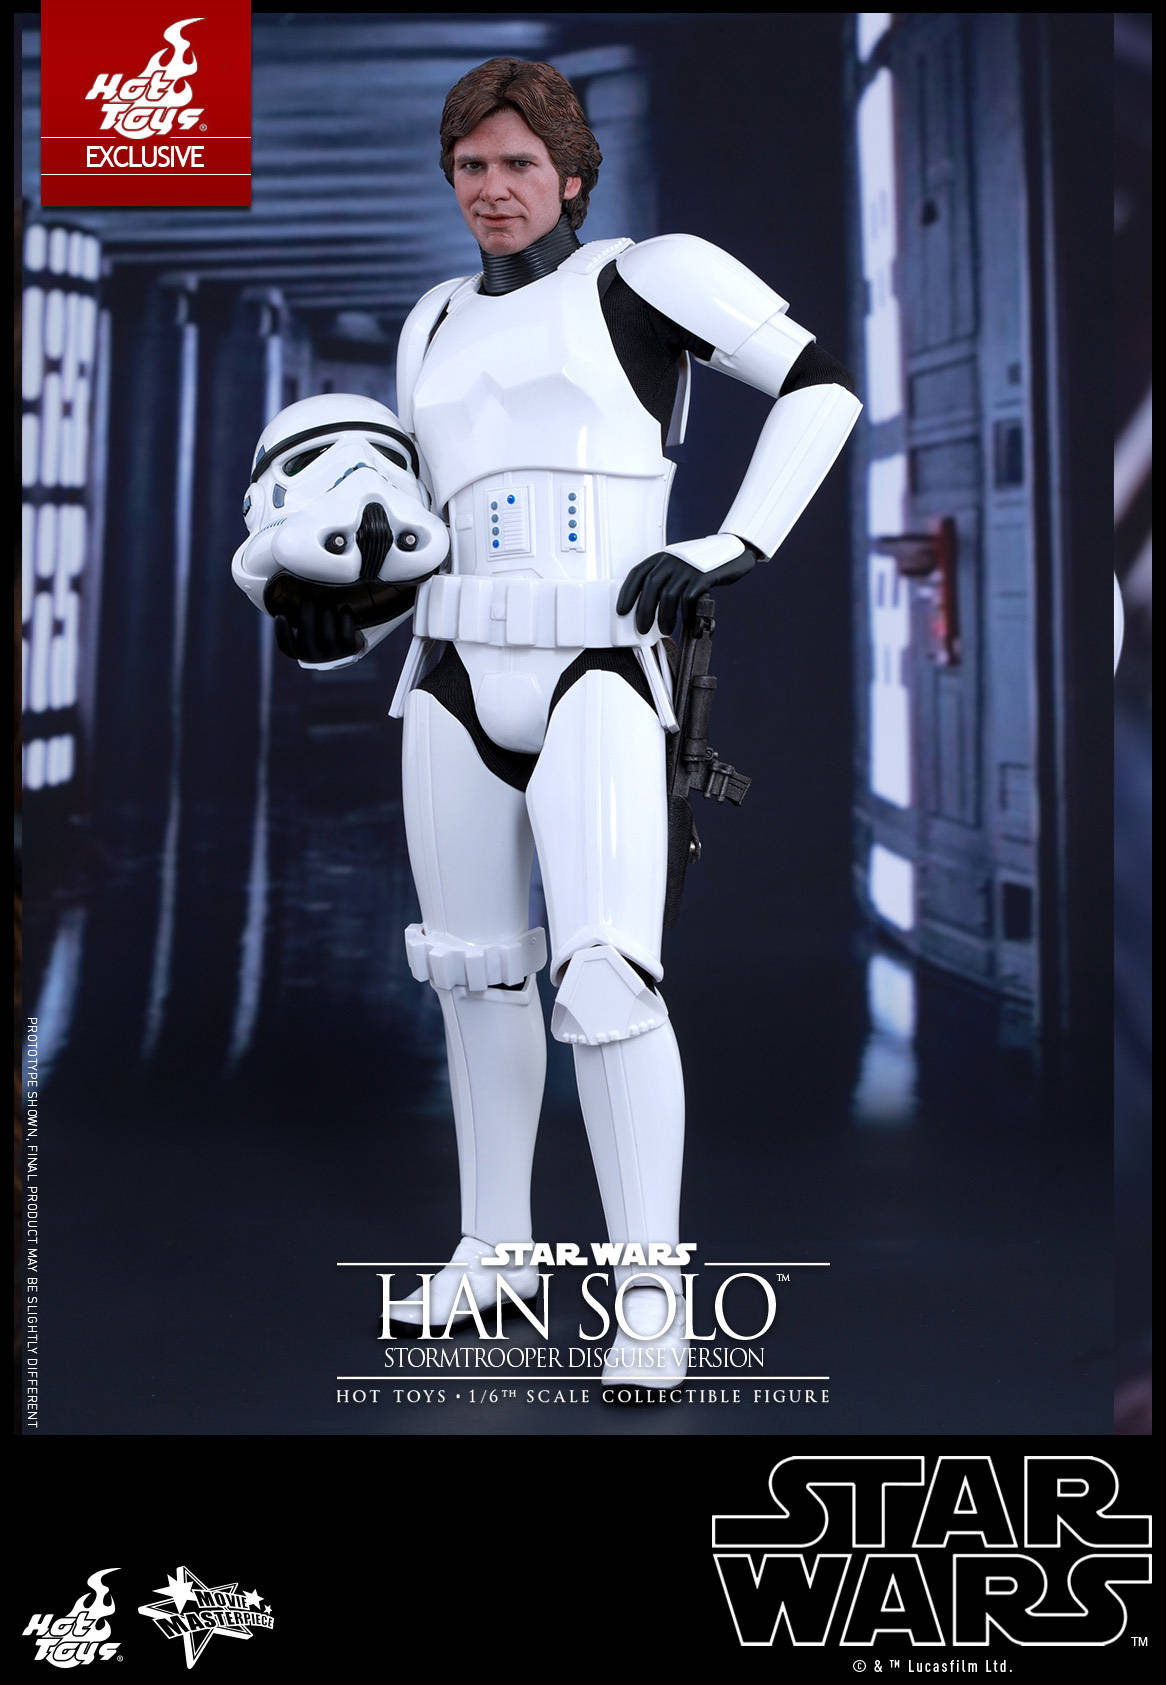 Hot-Toys---Star-Wars---Han-Solo-(Stormtrooper-Disguise-Version)-Collectible-Figure PR2